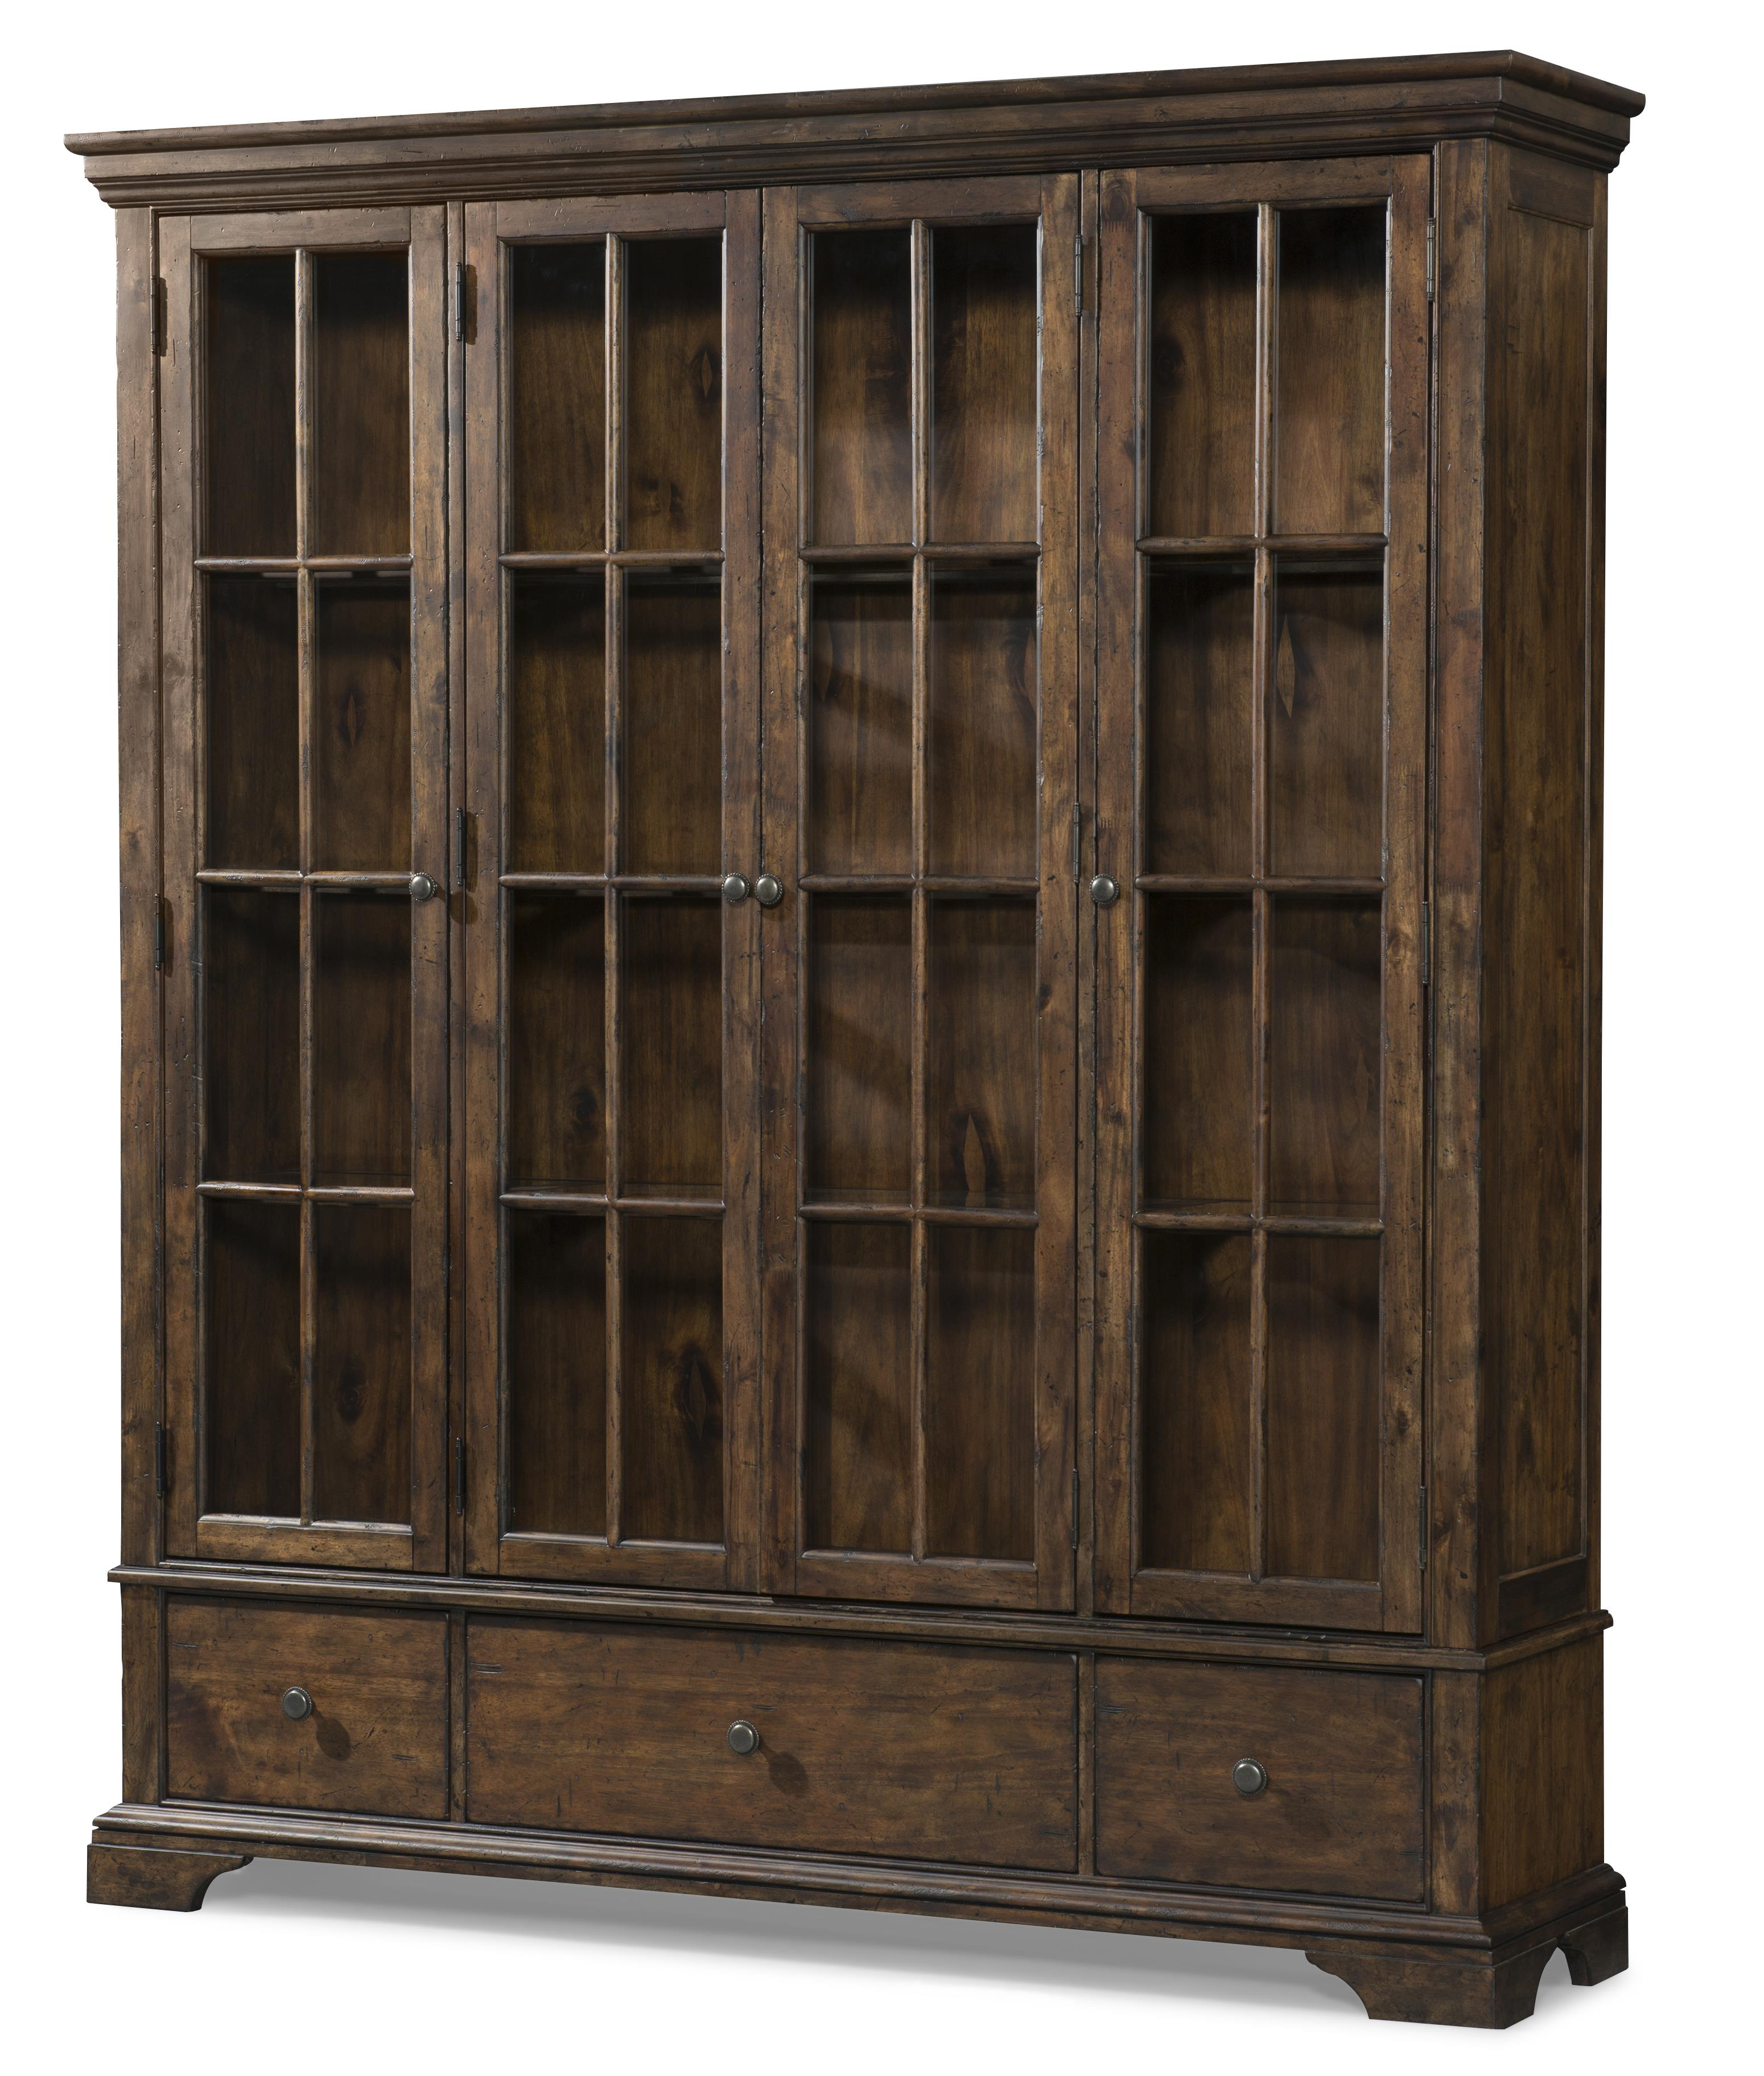 Trisha Yearwood Home Monticello Curio by Trisha Yearwood Home Collection by Klaussner at Darvin Furniture